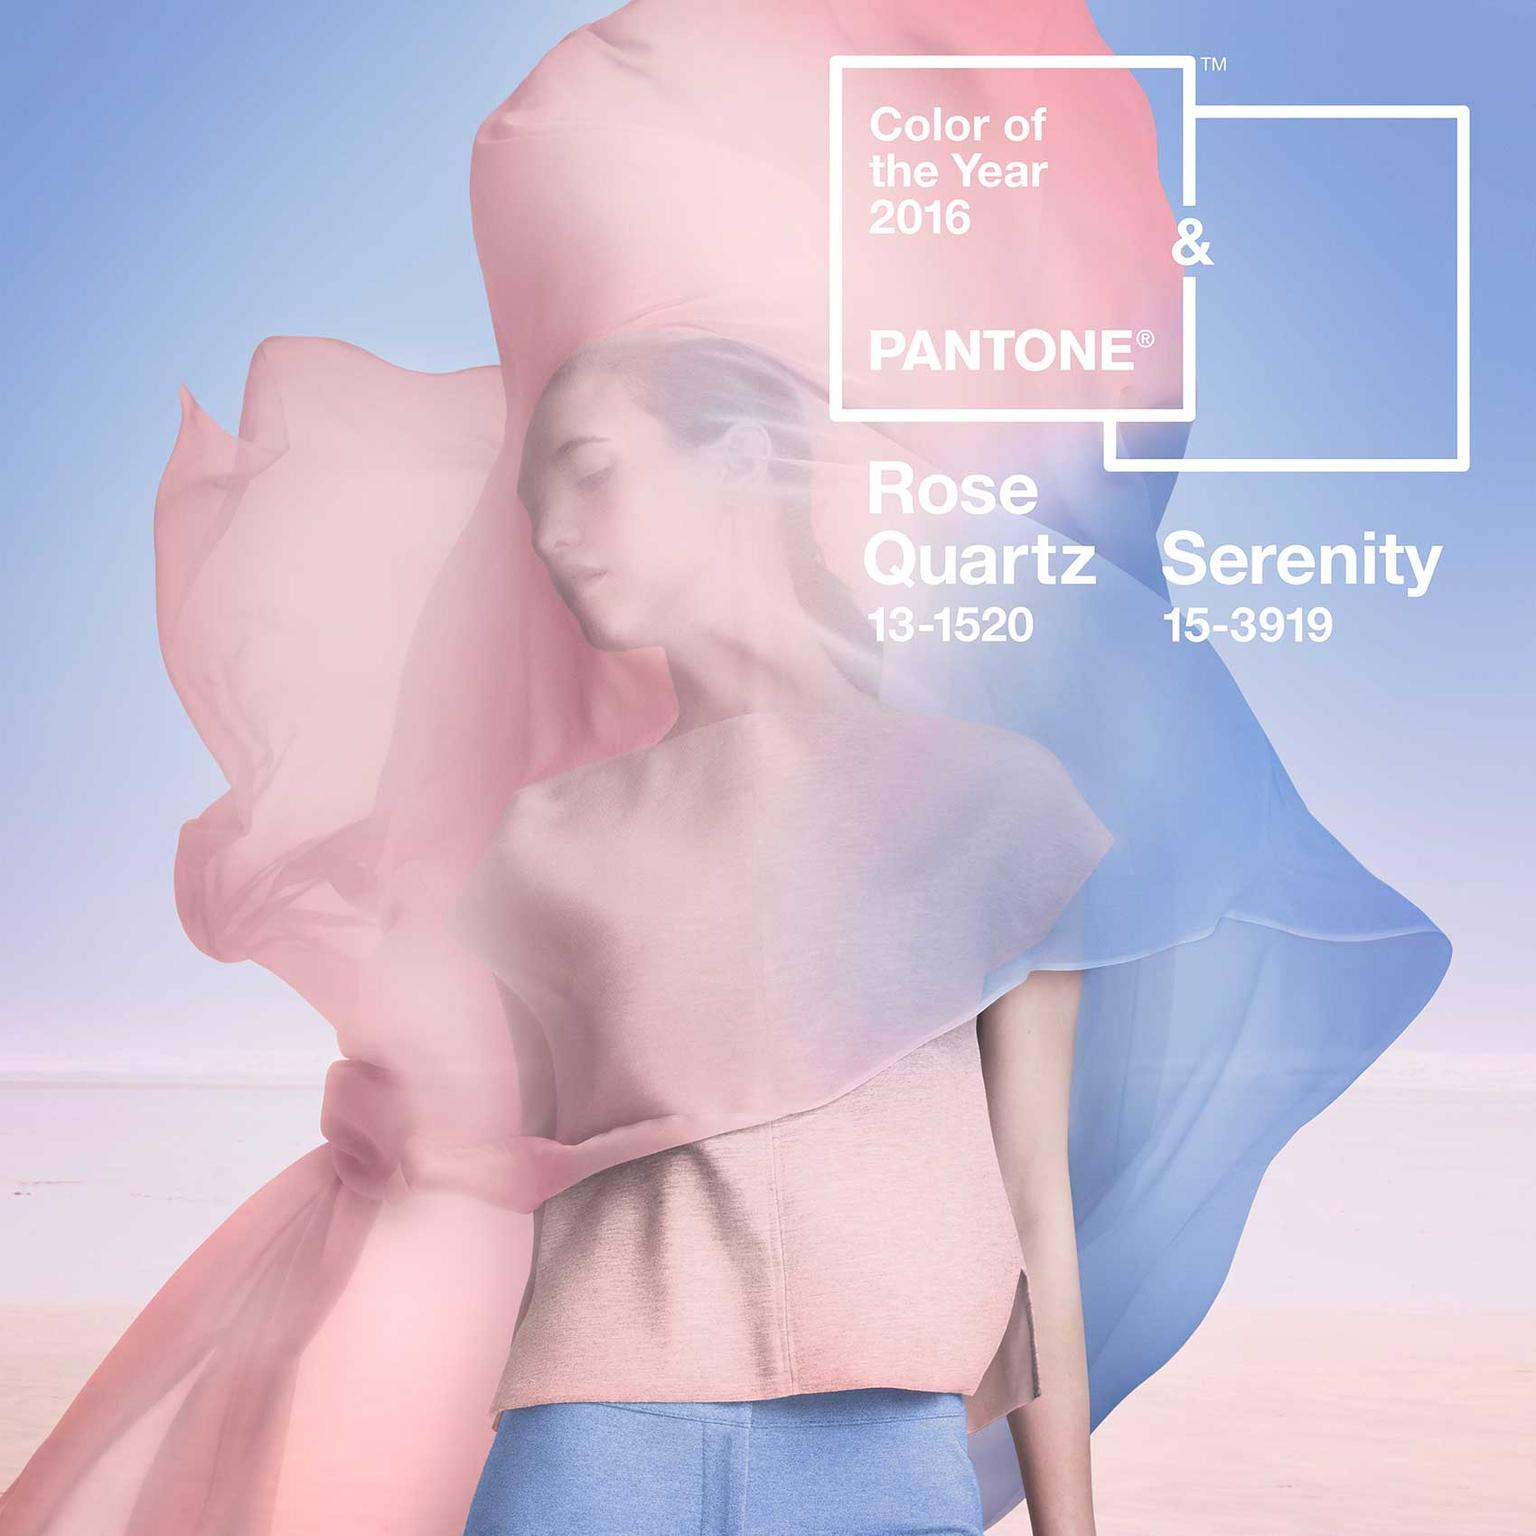 Pantone Color of the Year 2016